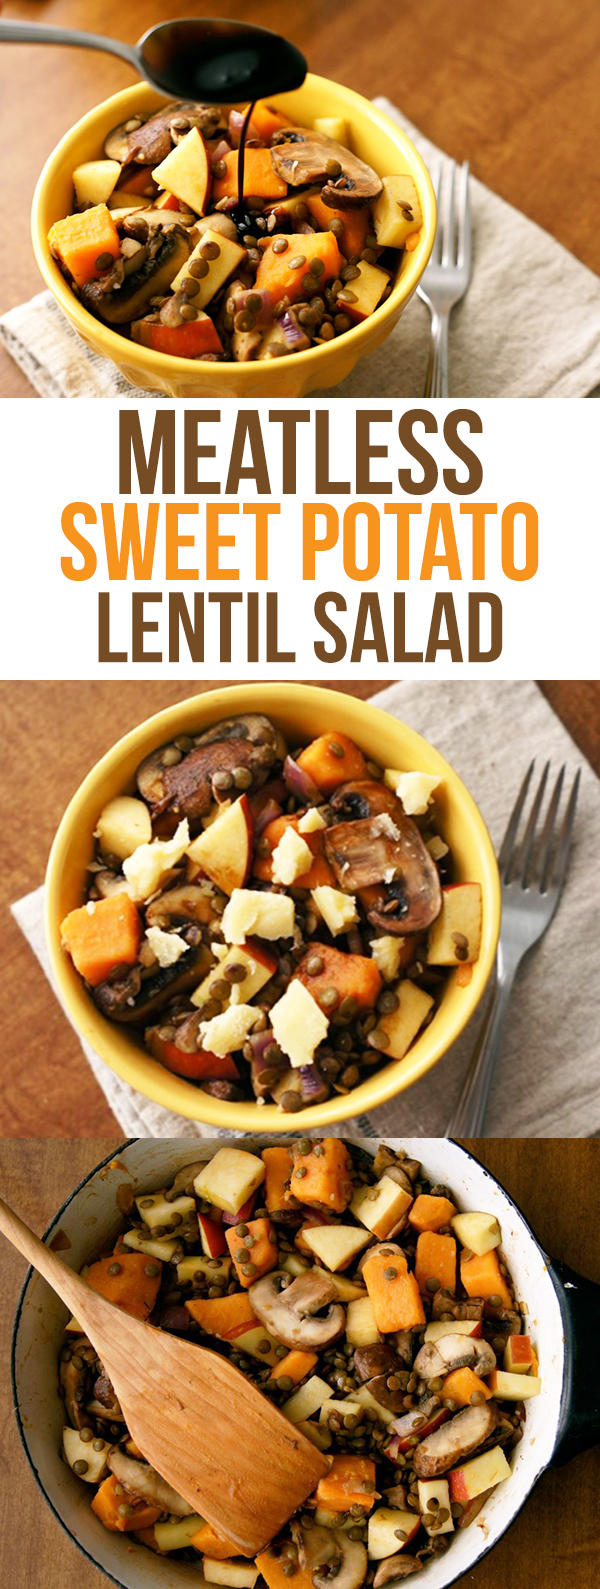 Sweet Potato Lentil Salad copy